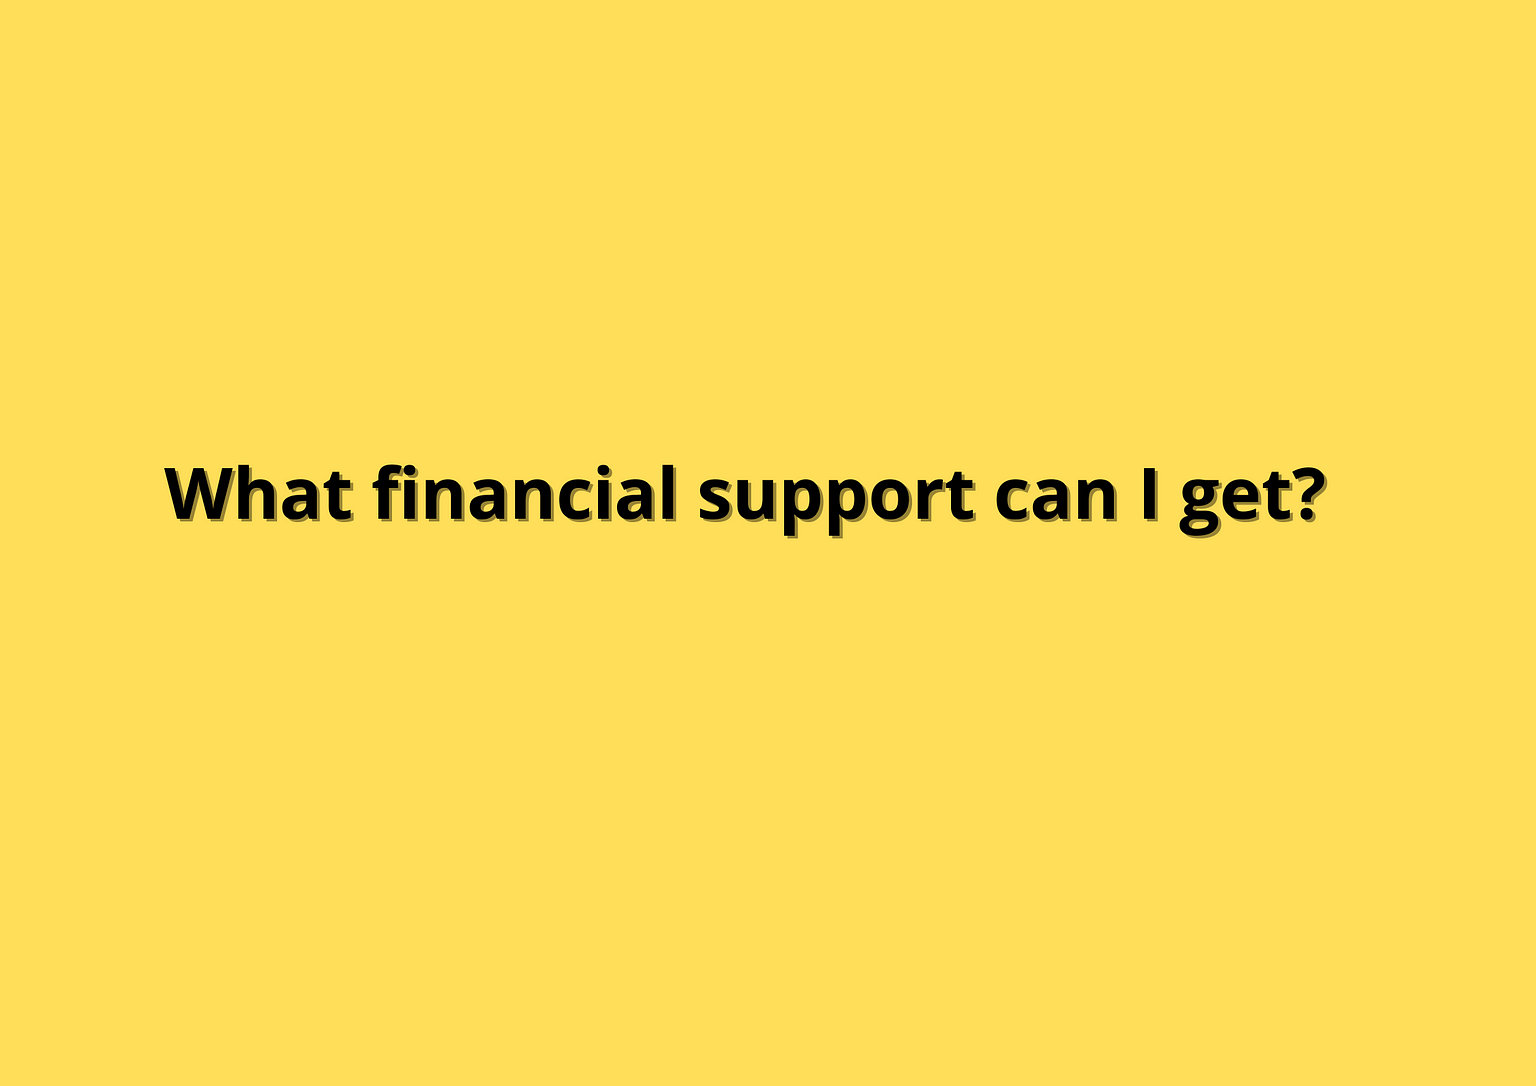 Financial Support - Covid